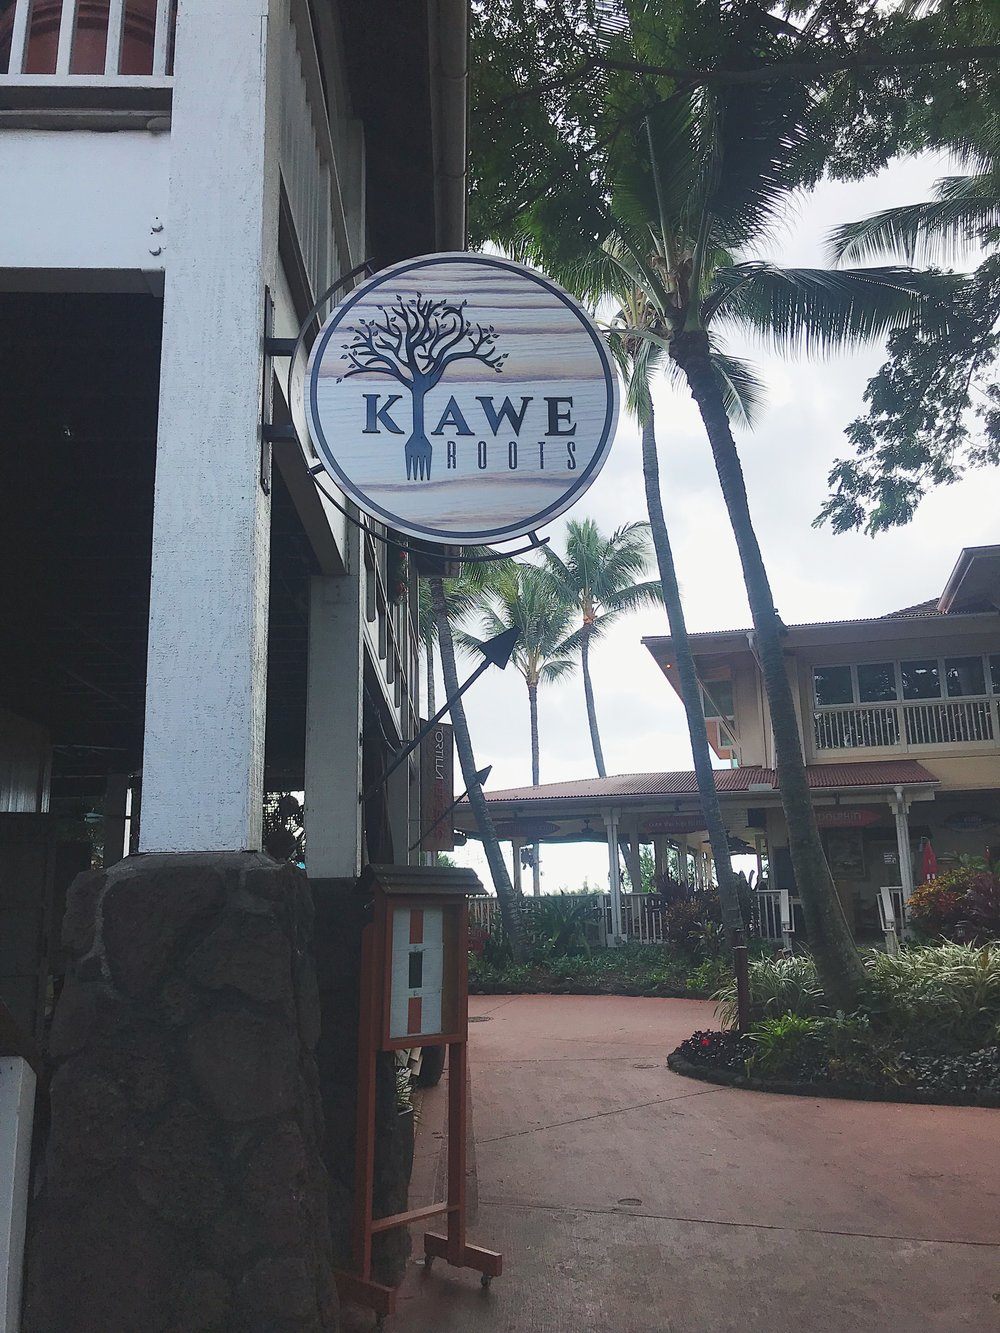 Kiawe Roots - This place started out as a food truck and was obviously so good they turned it into a restaurant! A local recommended this place to us and seriously we are SO glad we went! Scott wanted to try the Loco Moco (an authentic Hawaiian dish that is beef patties and sunny side up eggs served on a bed of rice with gravy) and I was very hesitant.but it was AMAZING! We are going to try to recreate it at home! I was lucky to be able to try it because gravy usually has gluten in it, but at Kiawe roots they made a gluten free demi-cream sauce and it was to die for! It wasn't dairy free - but worth it! We felt so loved because a stranger paid for our meal that night <3